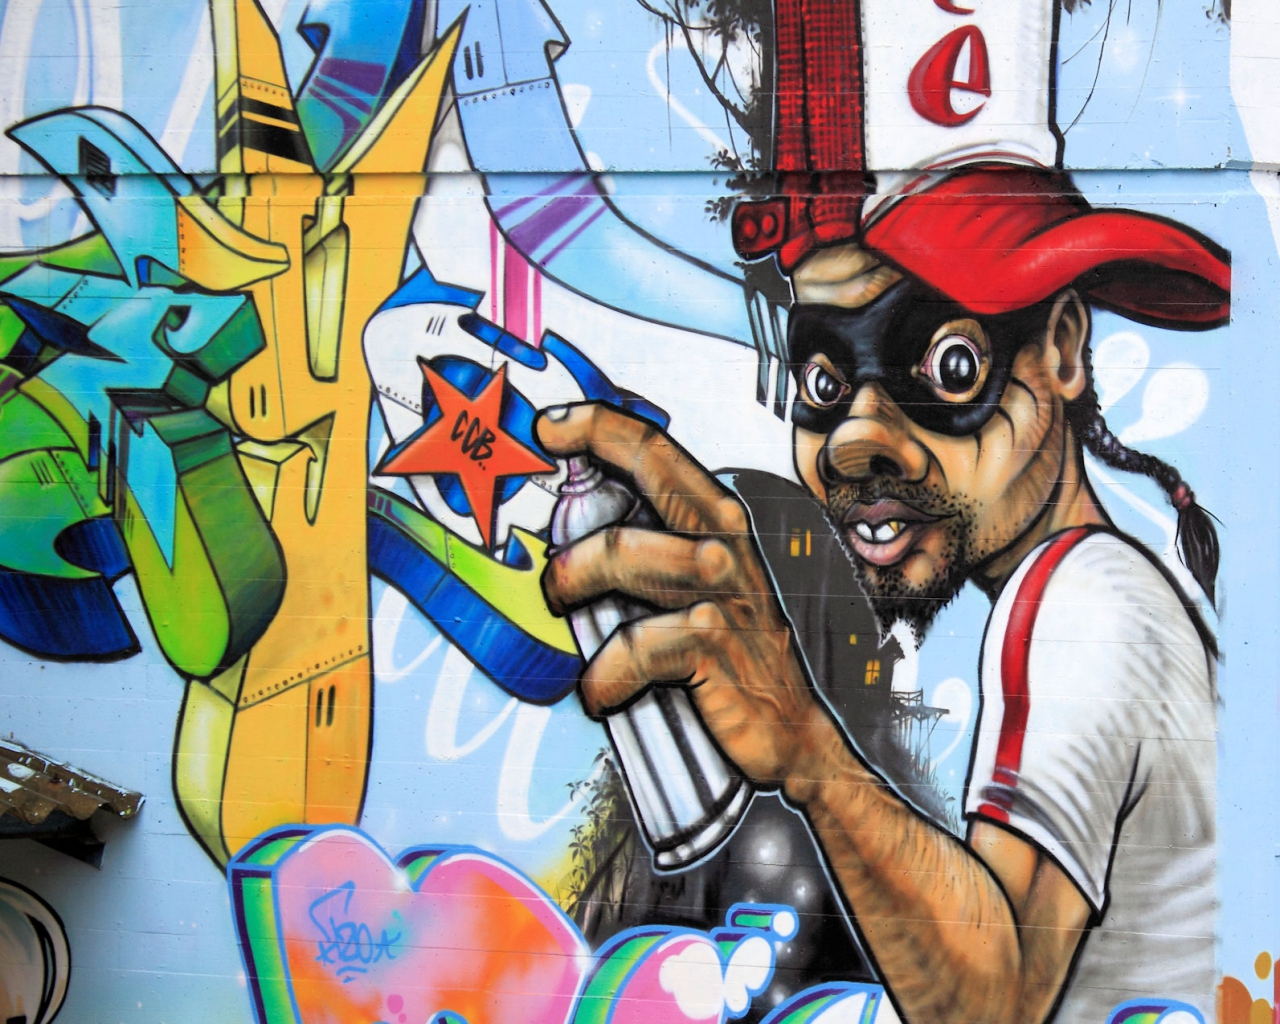 Related with : 60 Gambar Grafiti dan Wallpaper Graffiti Terkeren